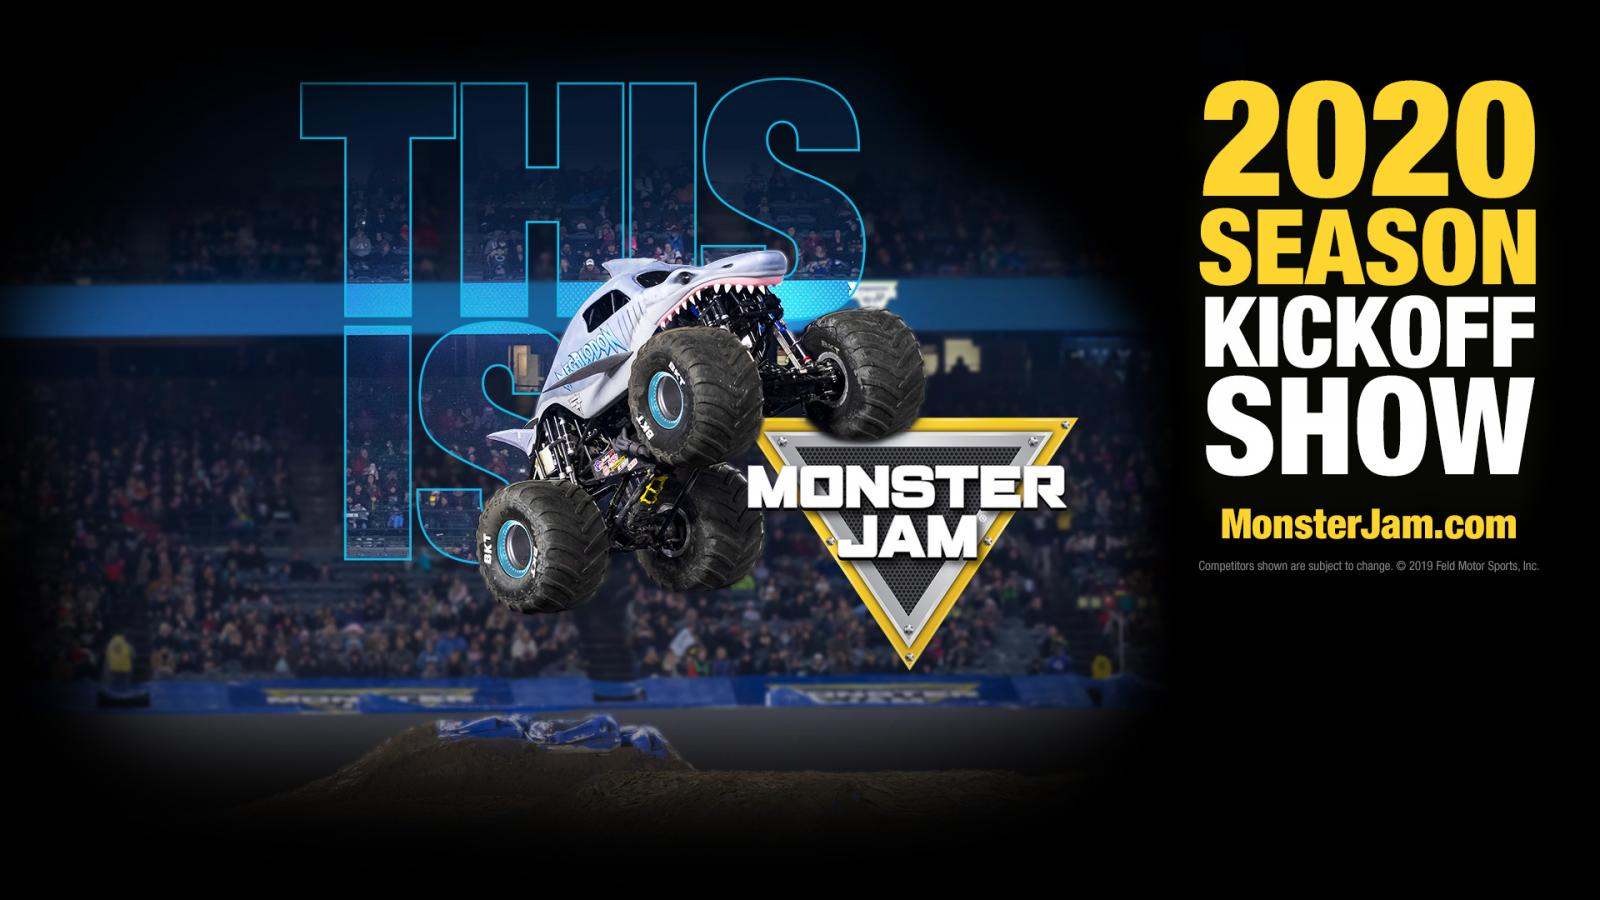 Monster Truck Show 2020.Monster Jam 2020 Season Announcement Monster Jam